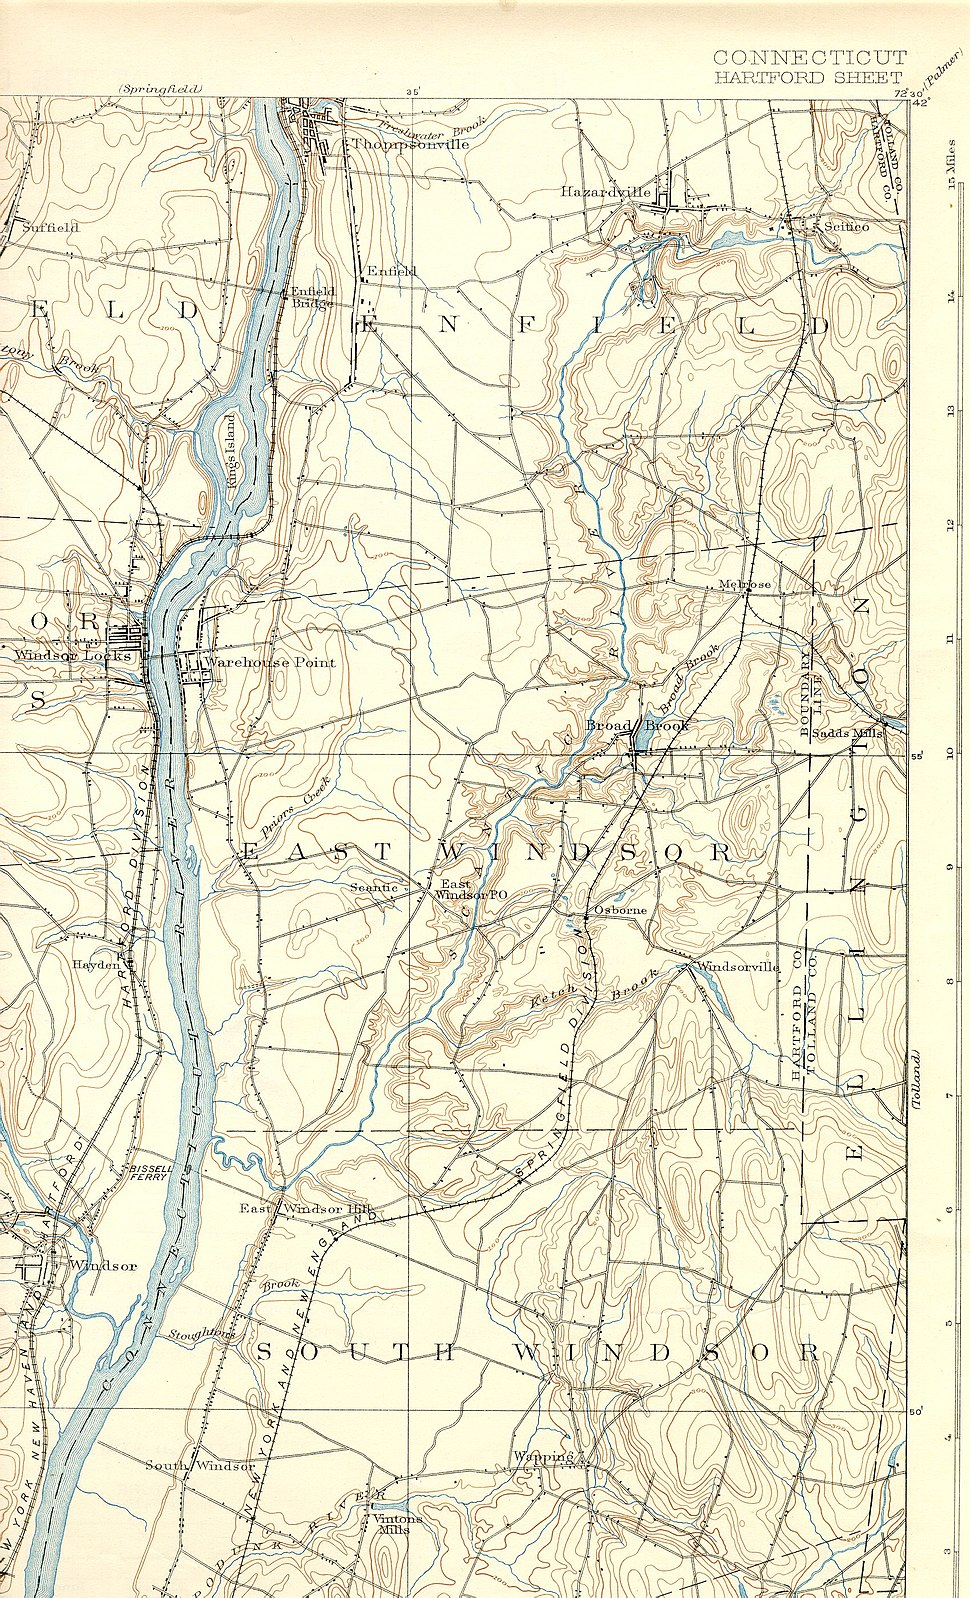 Scantic River (Connecticut) map